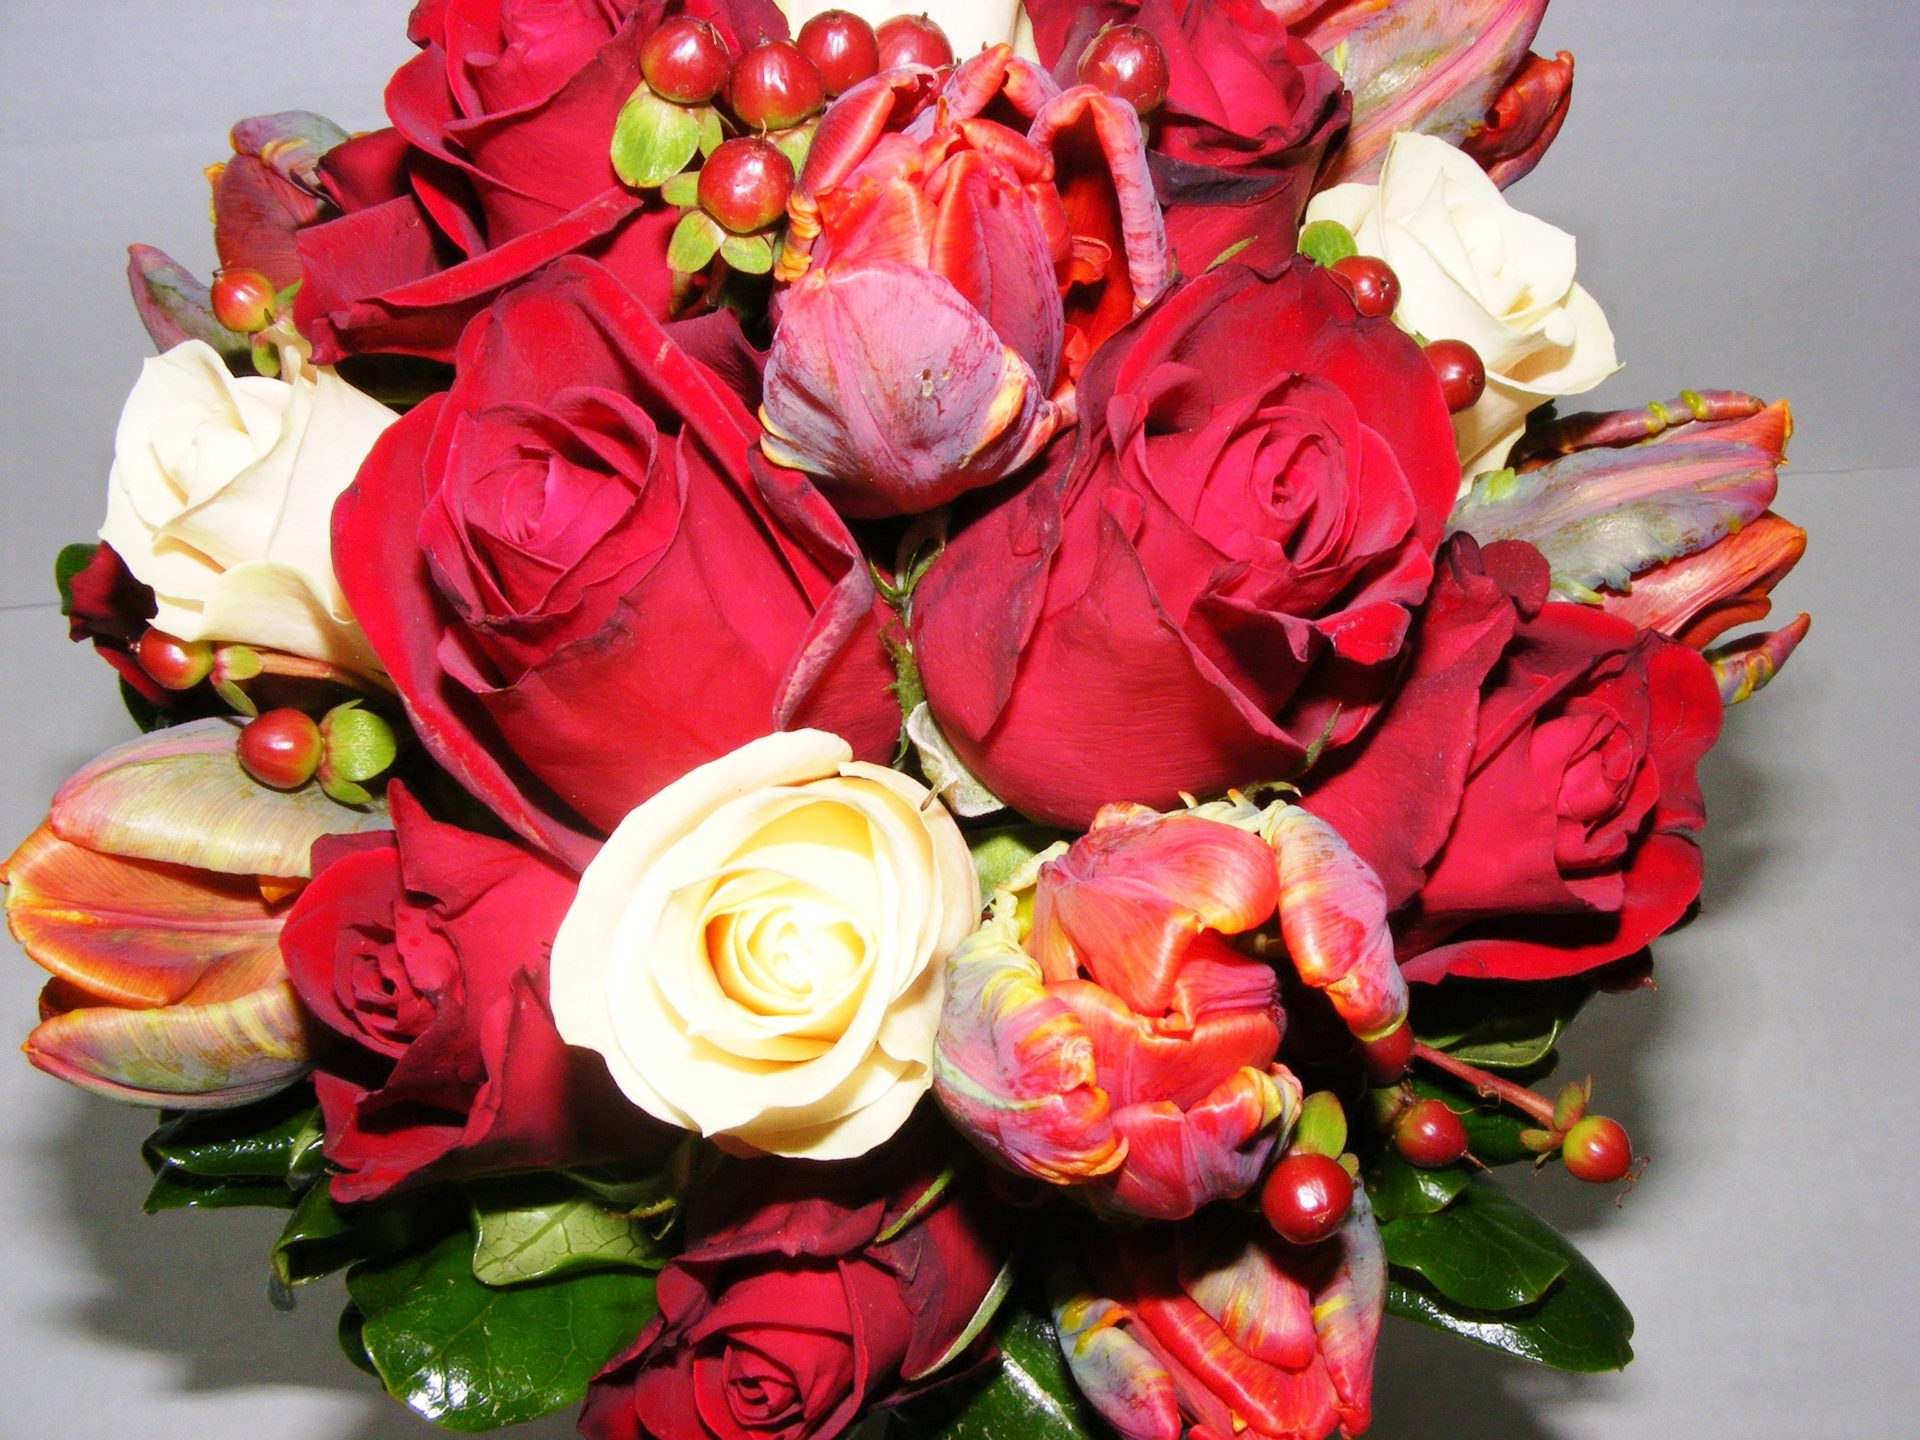 Red parrot tulips with red and champagne rose bridal bouquet